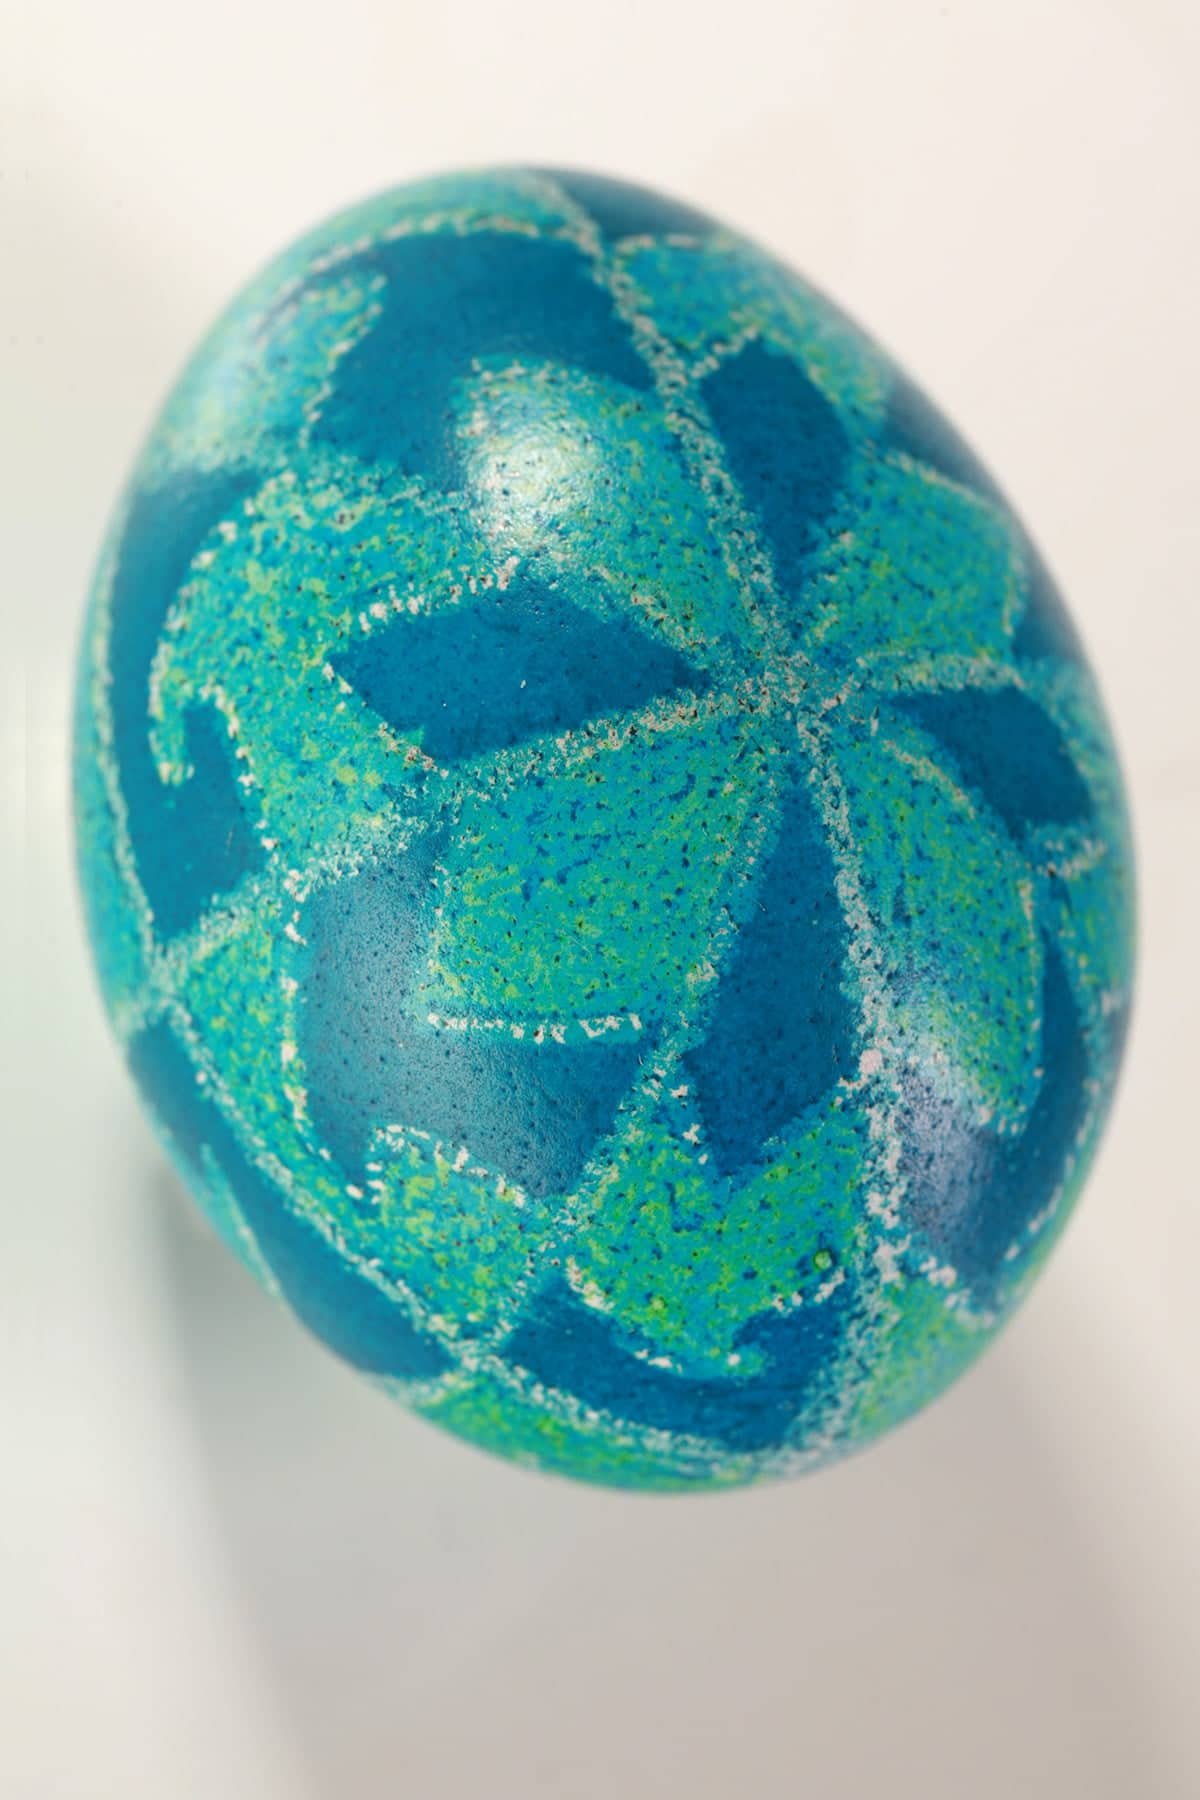 A teal and blue pysanky dyed Easter egg with a geometric design covering it.